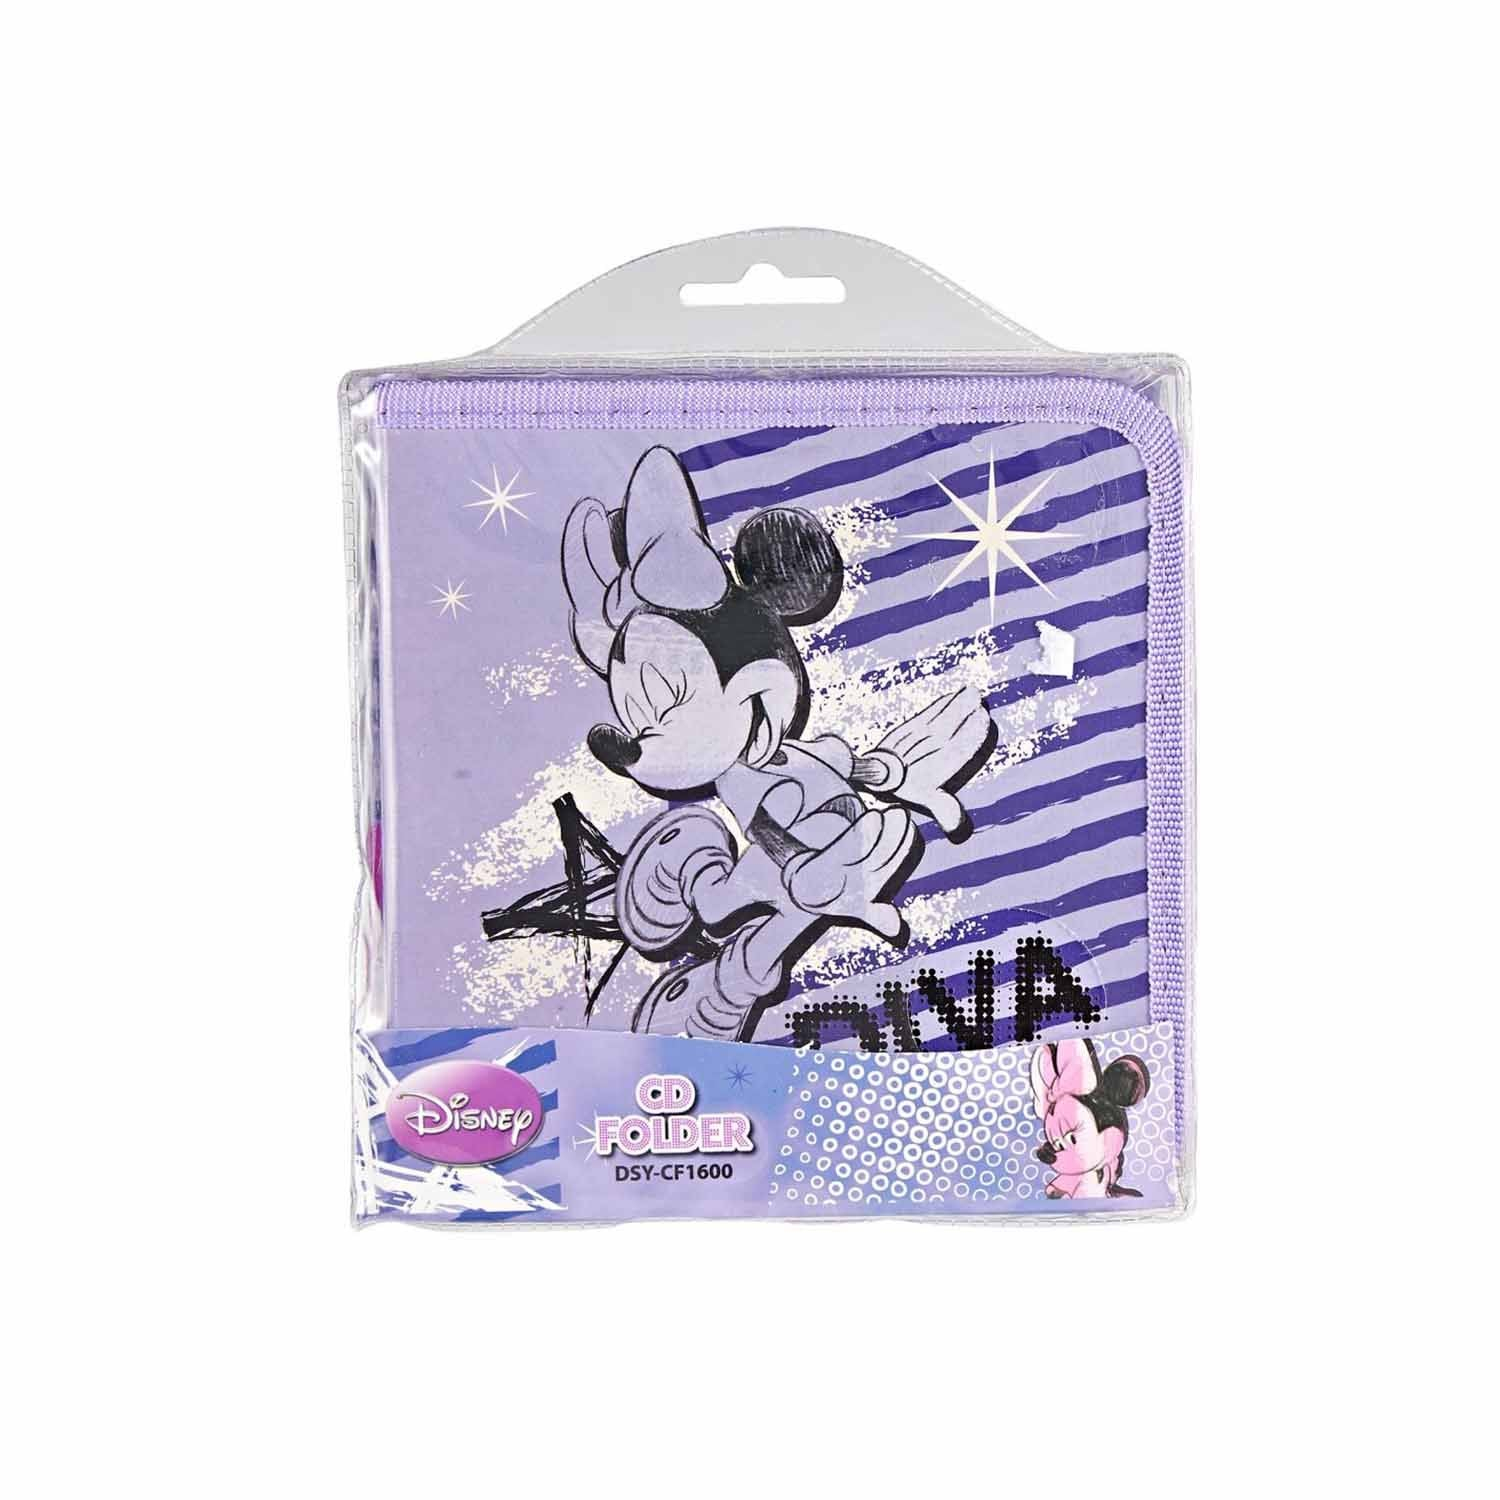 Disney Minnie Mouse CD Folder 24